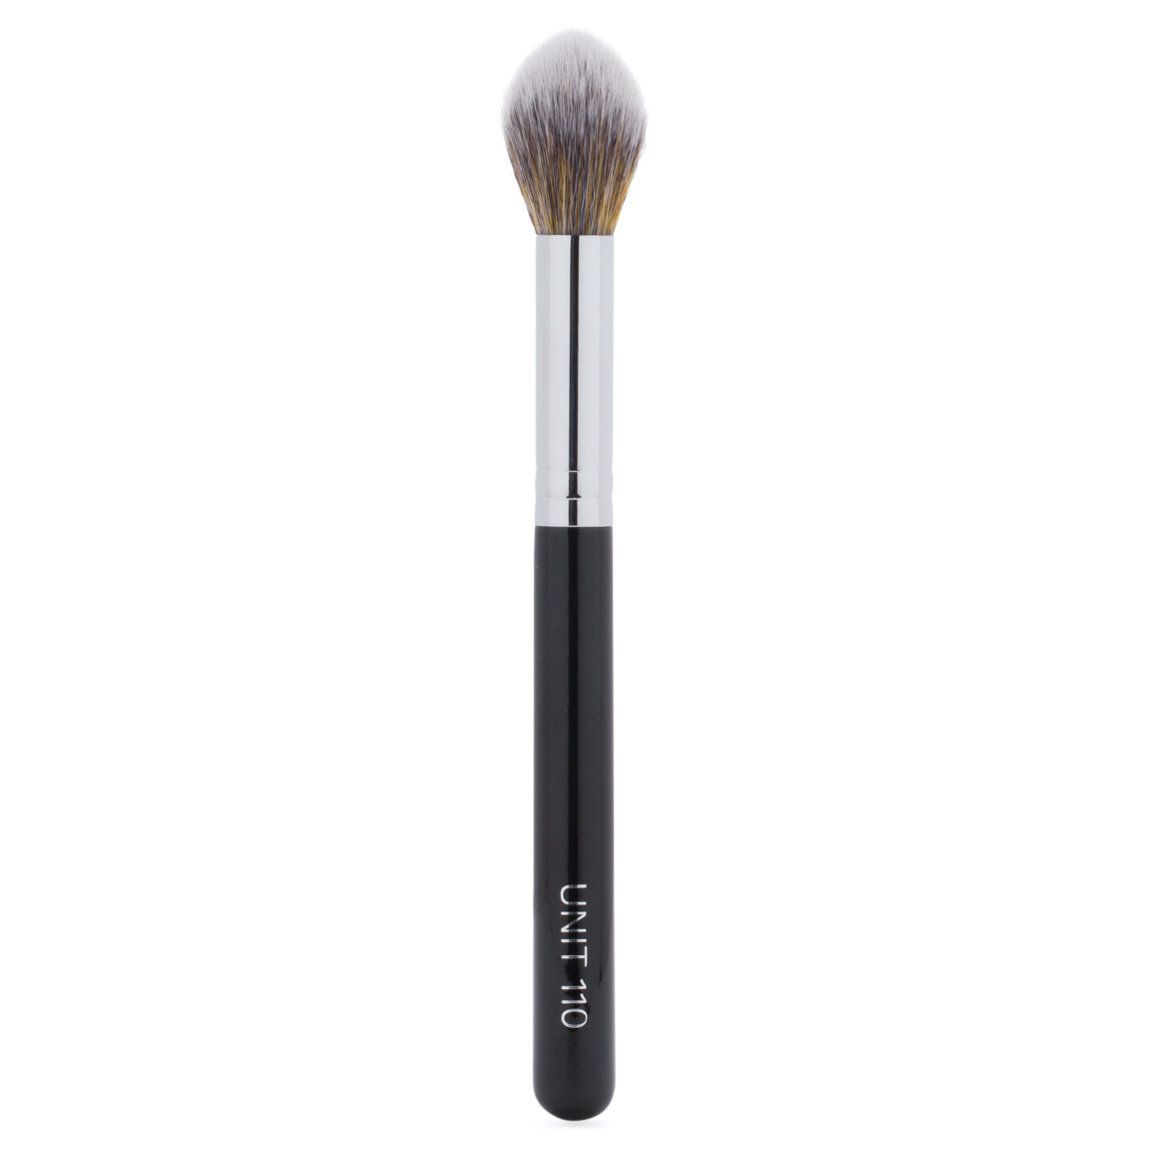 UNIT 110 Cheek Brush